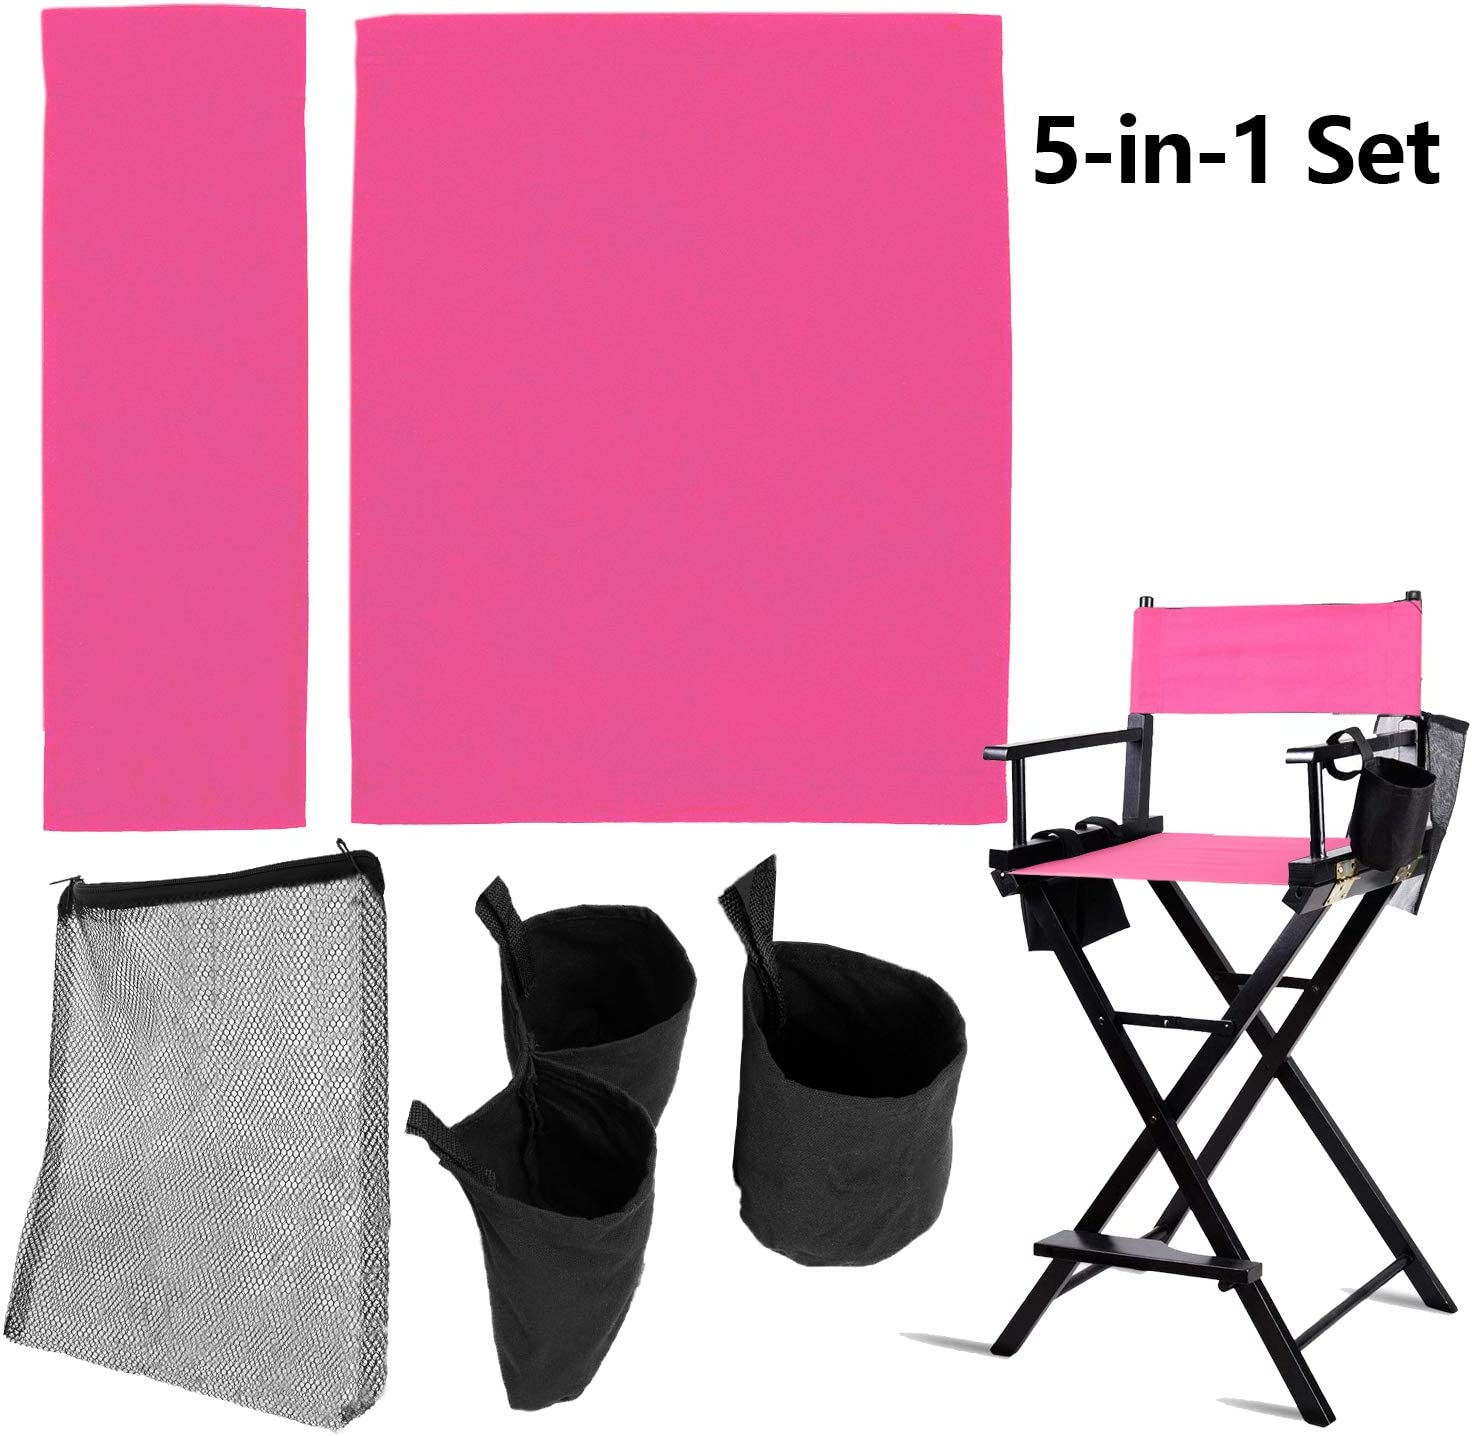 STAY GENT 5 in 1 Accessories Set for Makeup Artist Chair, (not Including Chair) Deep Pink Chair Replacement Cover Canvas, 2 Portable Side Storage Bags and Hanging Mesh Bag